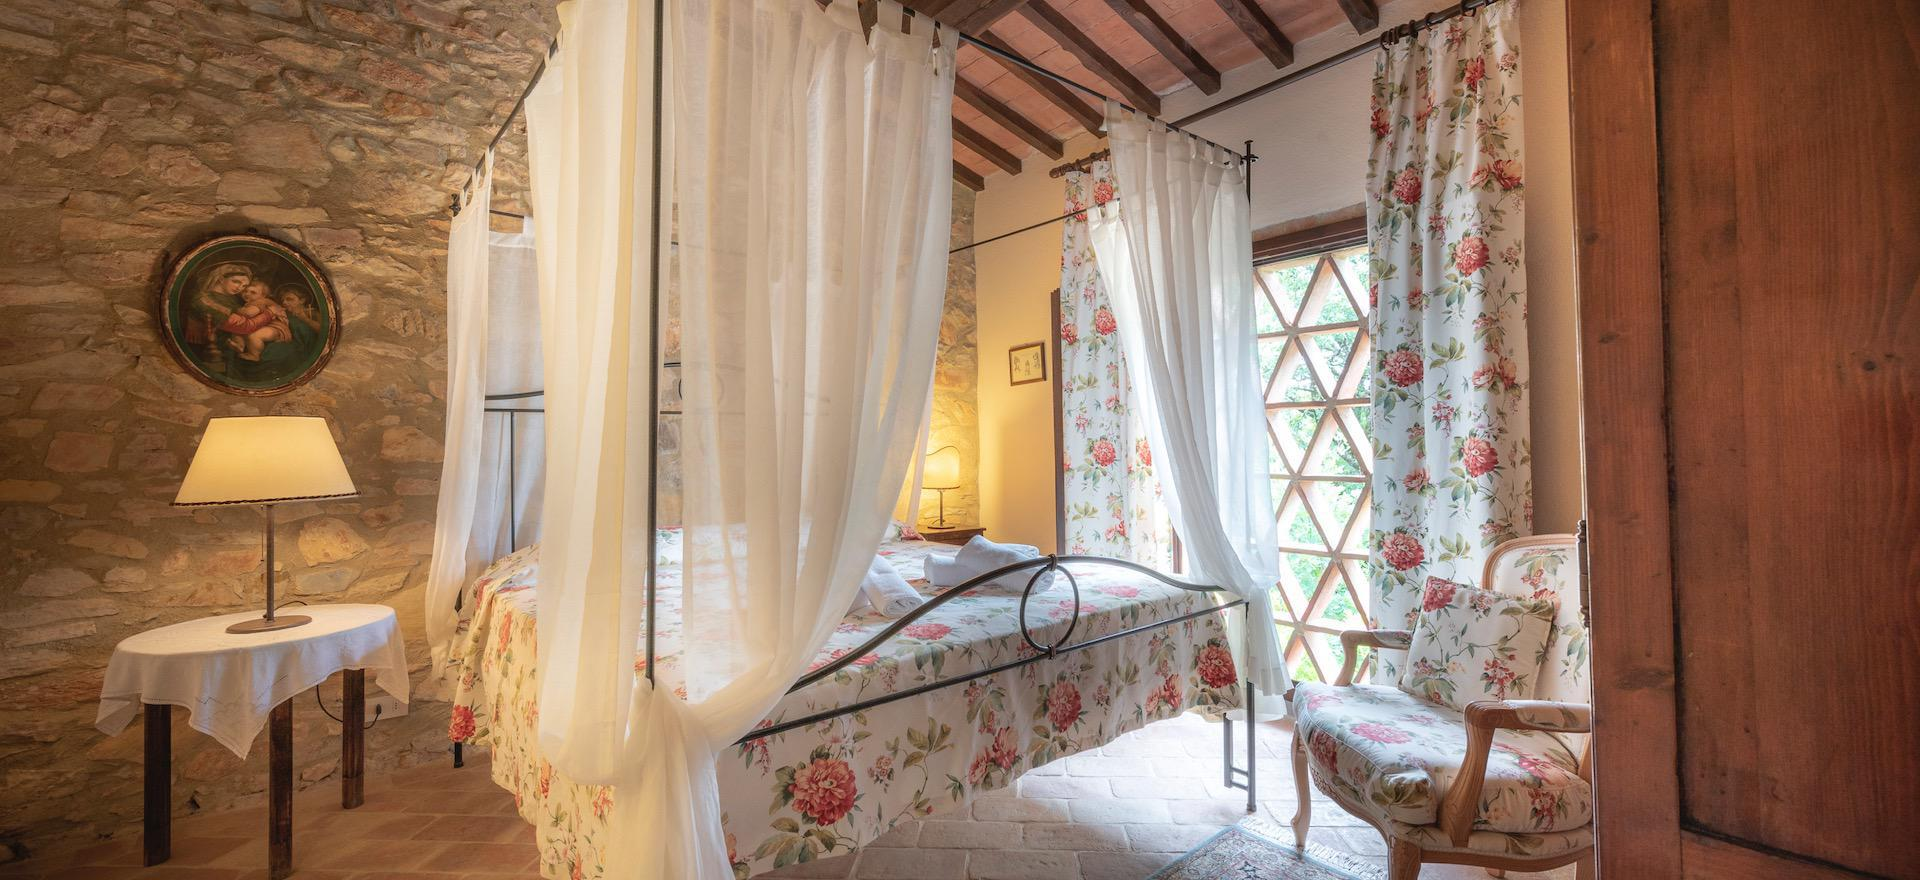 Agriturismo Tuscany Agriturismo - Farmhouse for lovers of peace and comfort in Tuscany